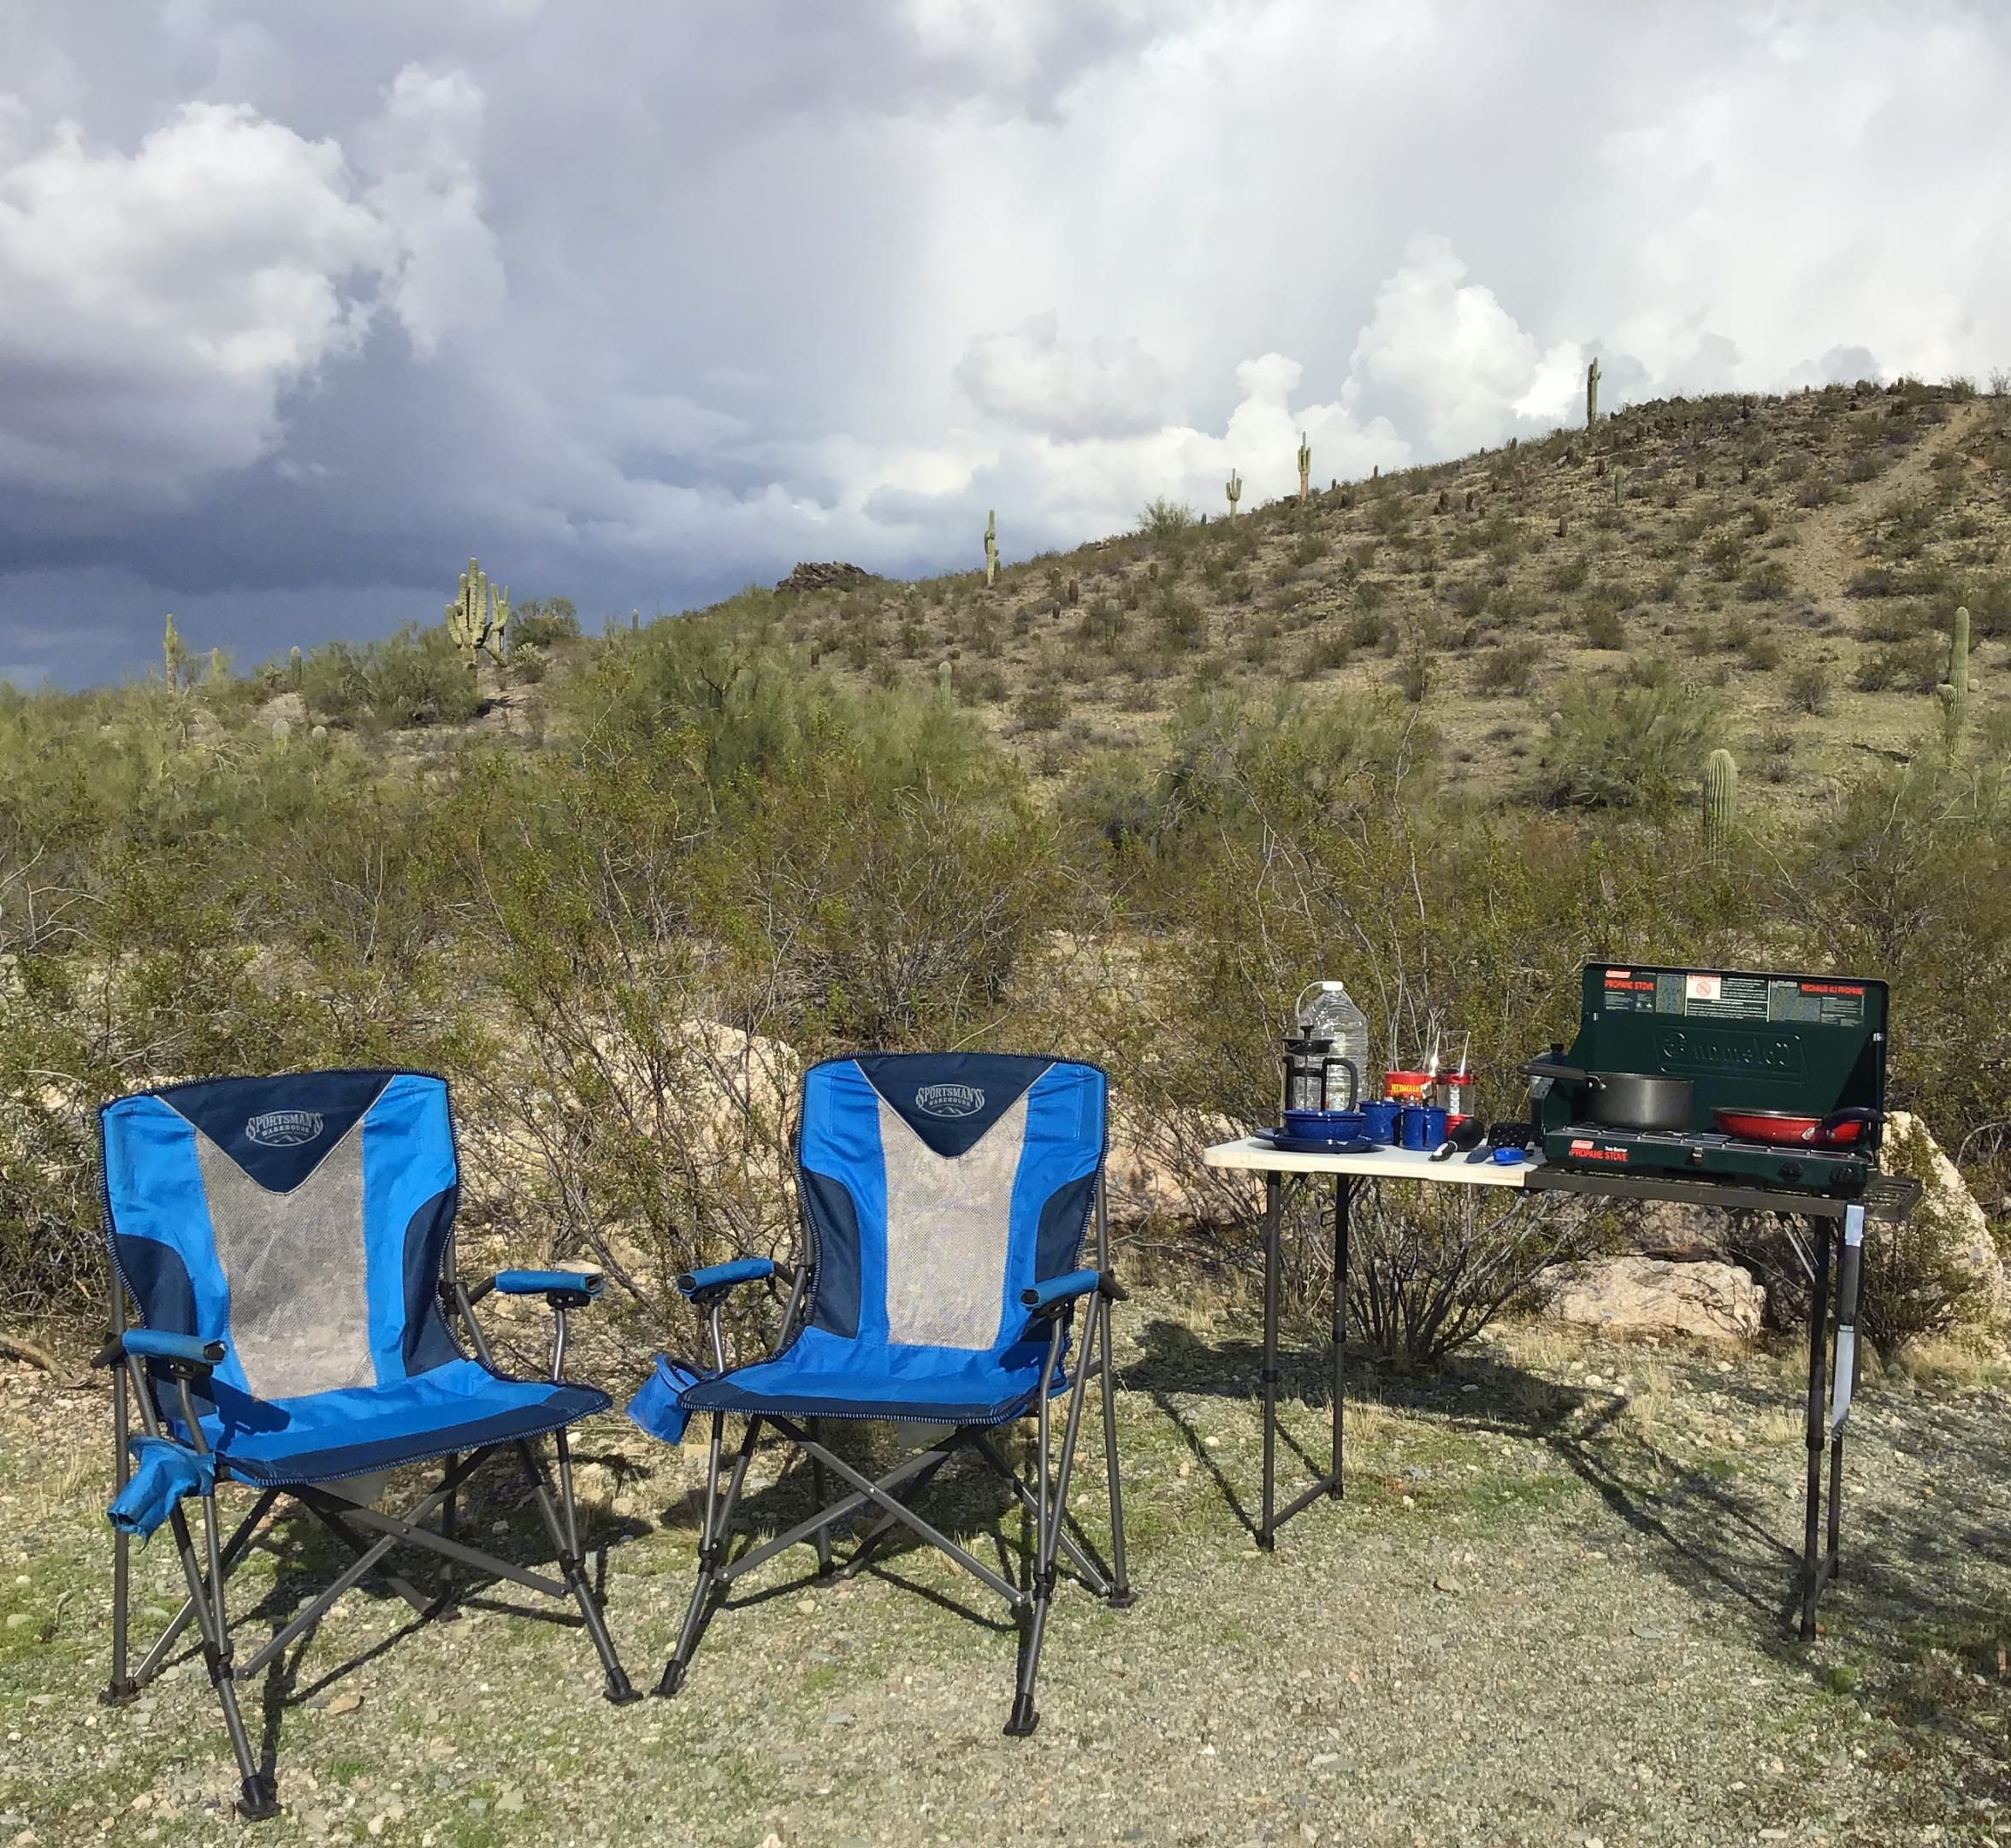 Camp chairs and table included in the gear. Ford Campervan Expedition Adventure 4x4 Camper Van Conversion 2005